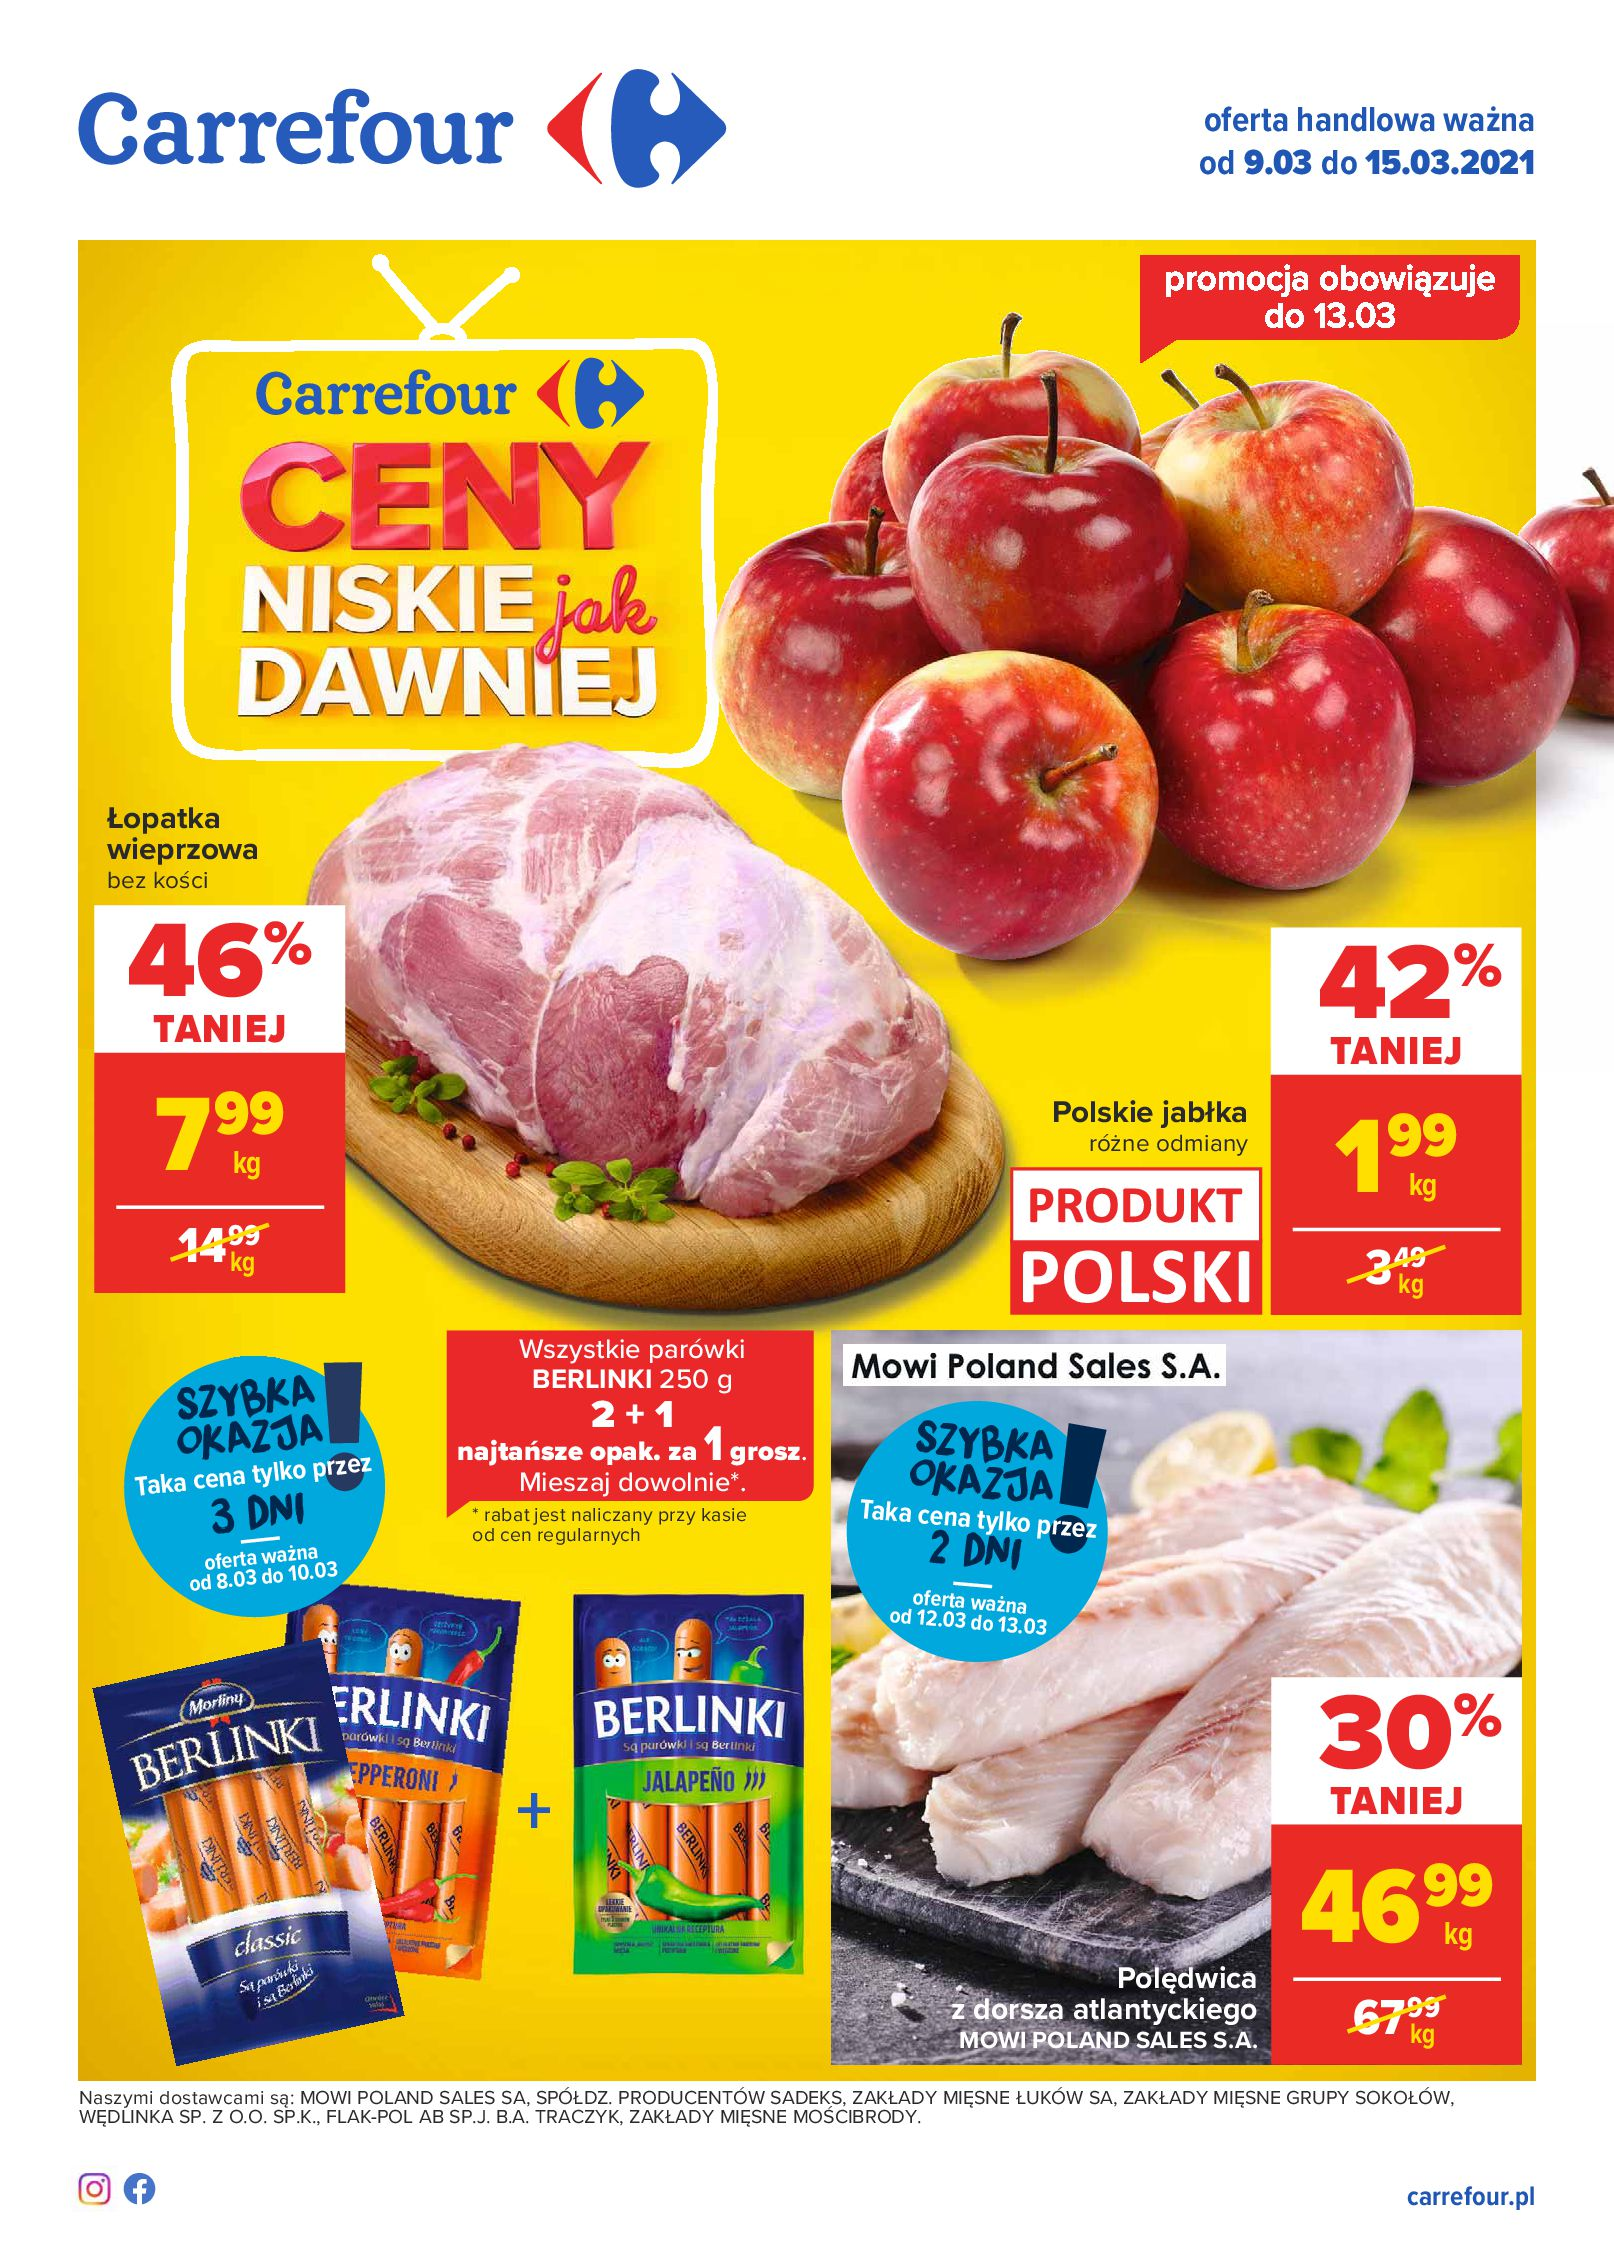 Carrefour:  Gazetka Carrefour 08.03.2021